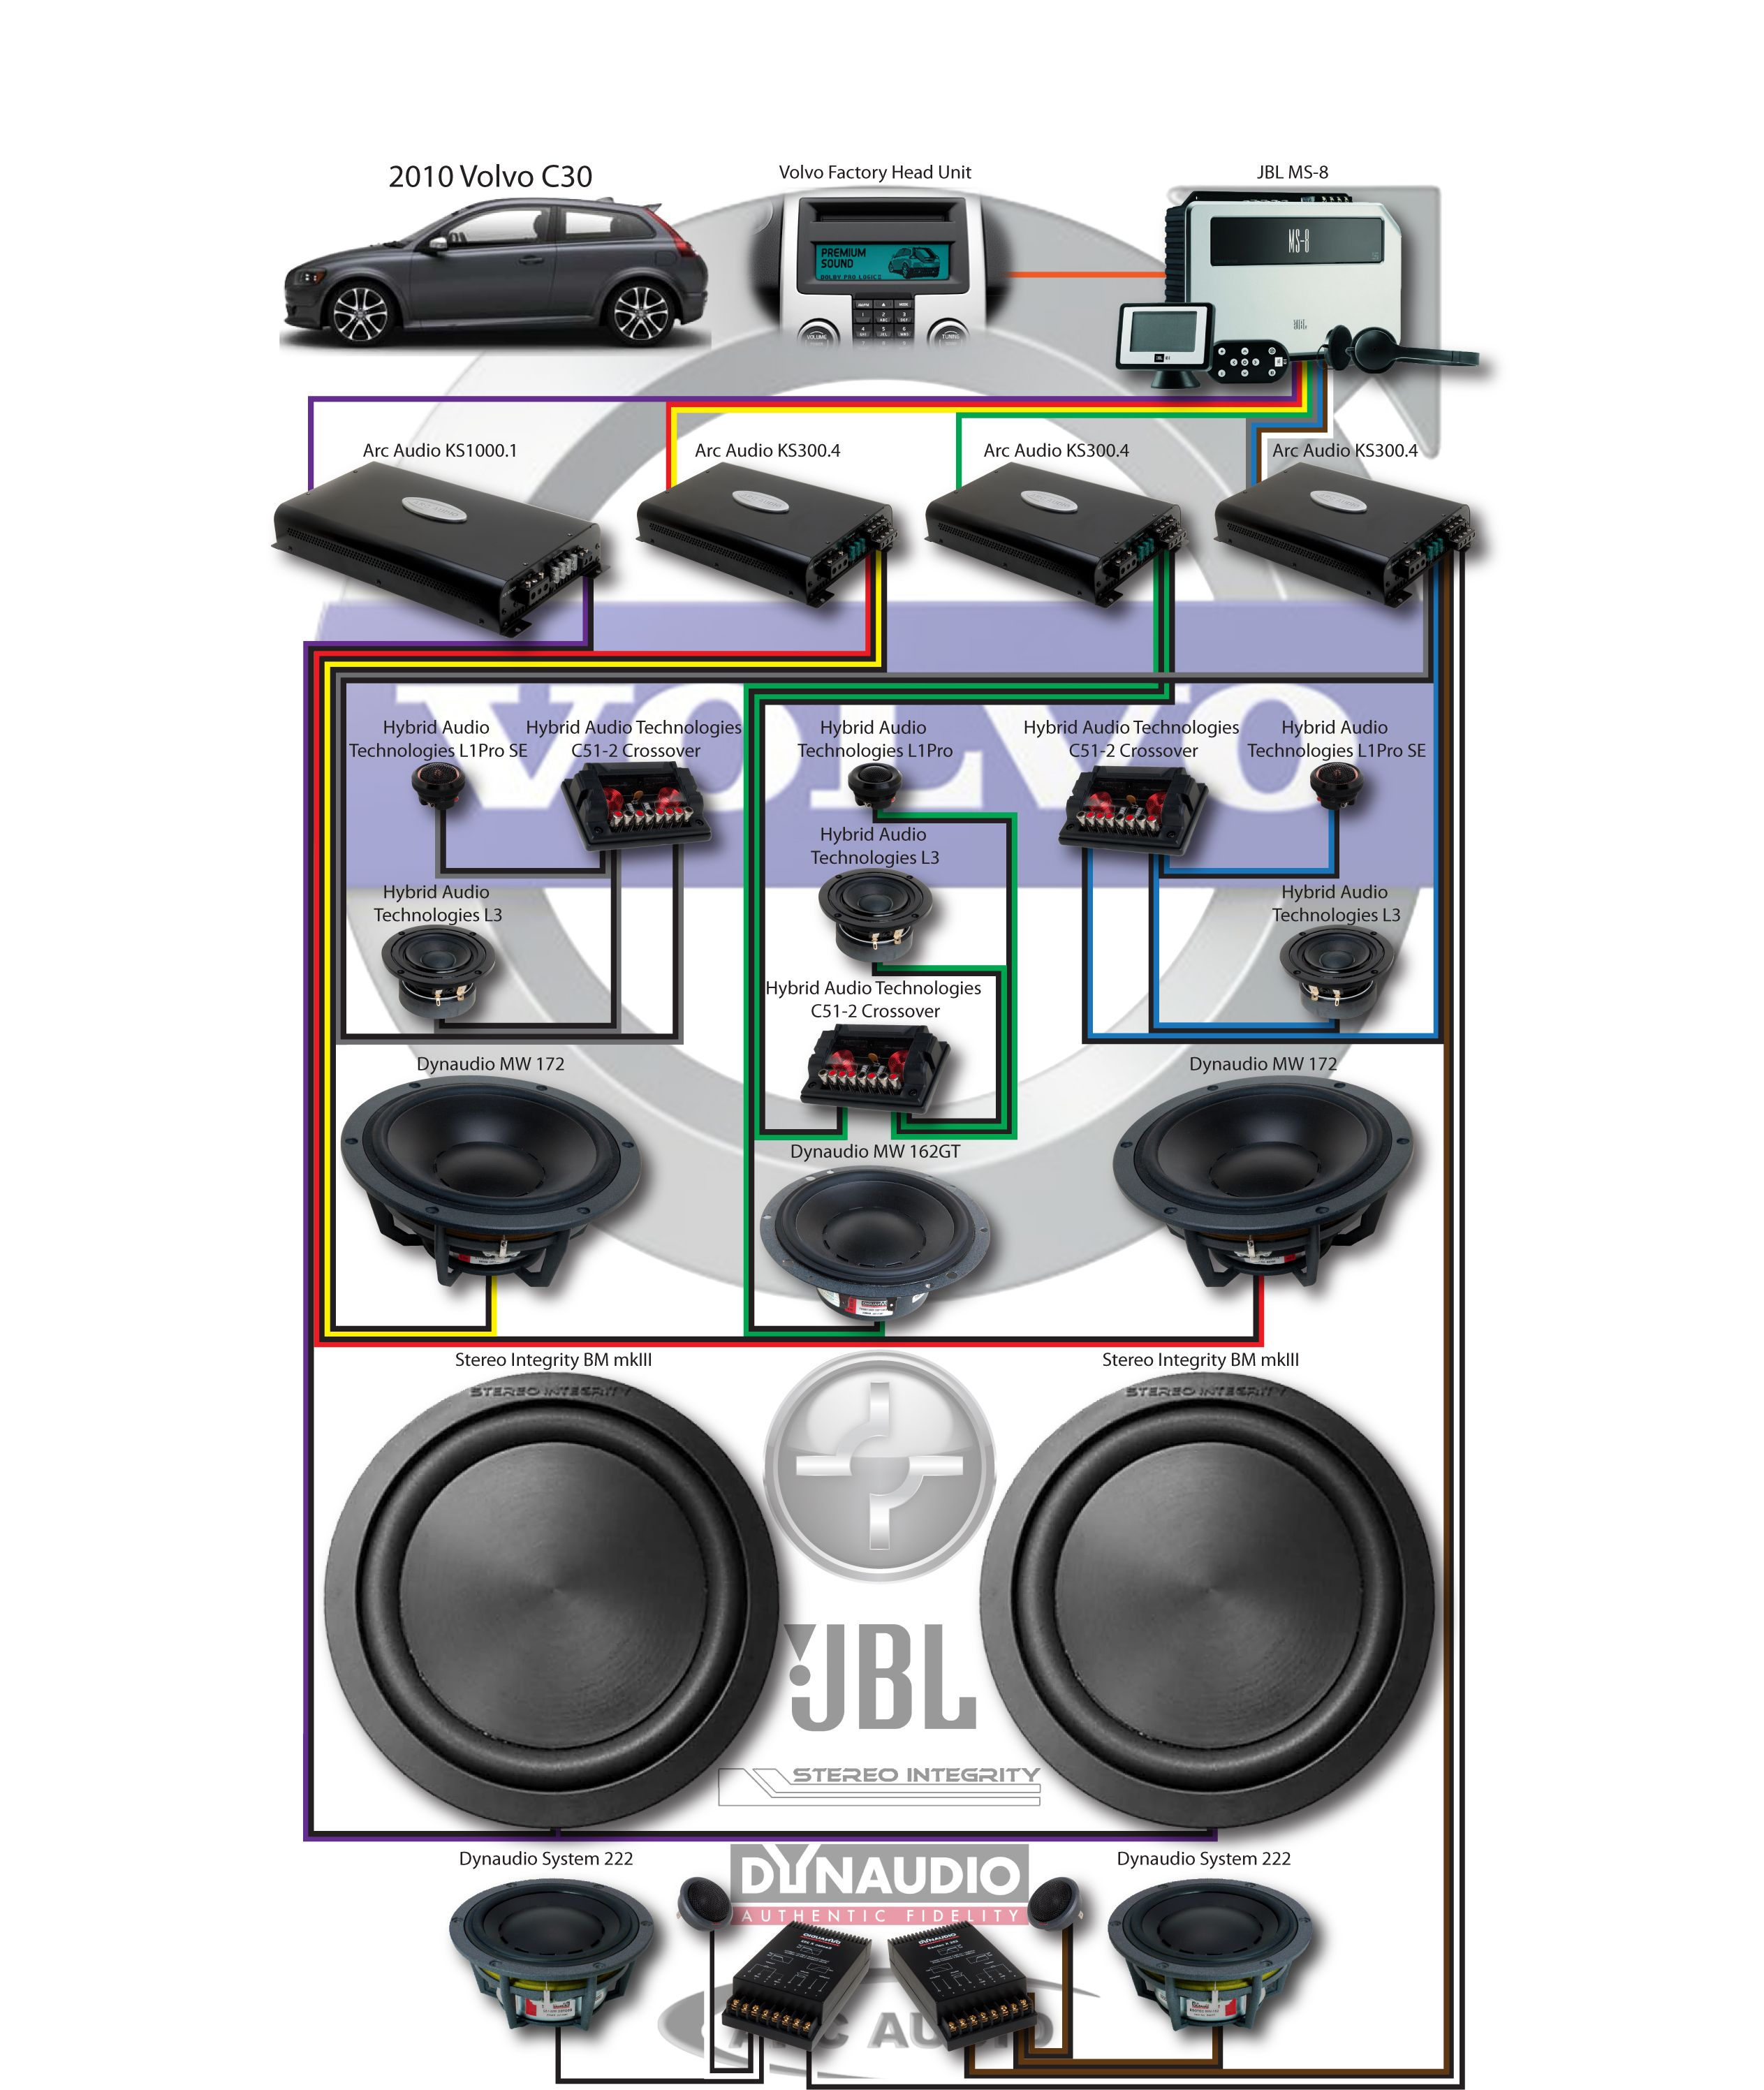 2010 Volvo C30 Dynaudio, HAT, Arc, Stereo Integrity - Page 29 - Car ...